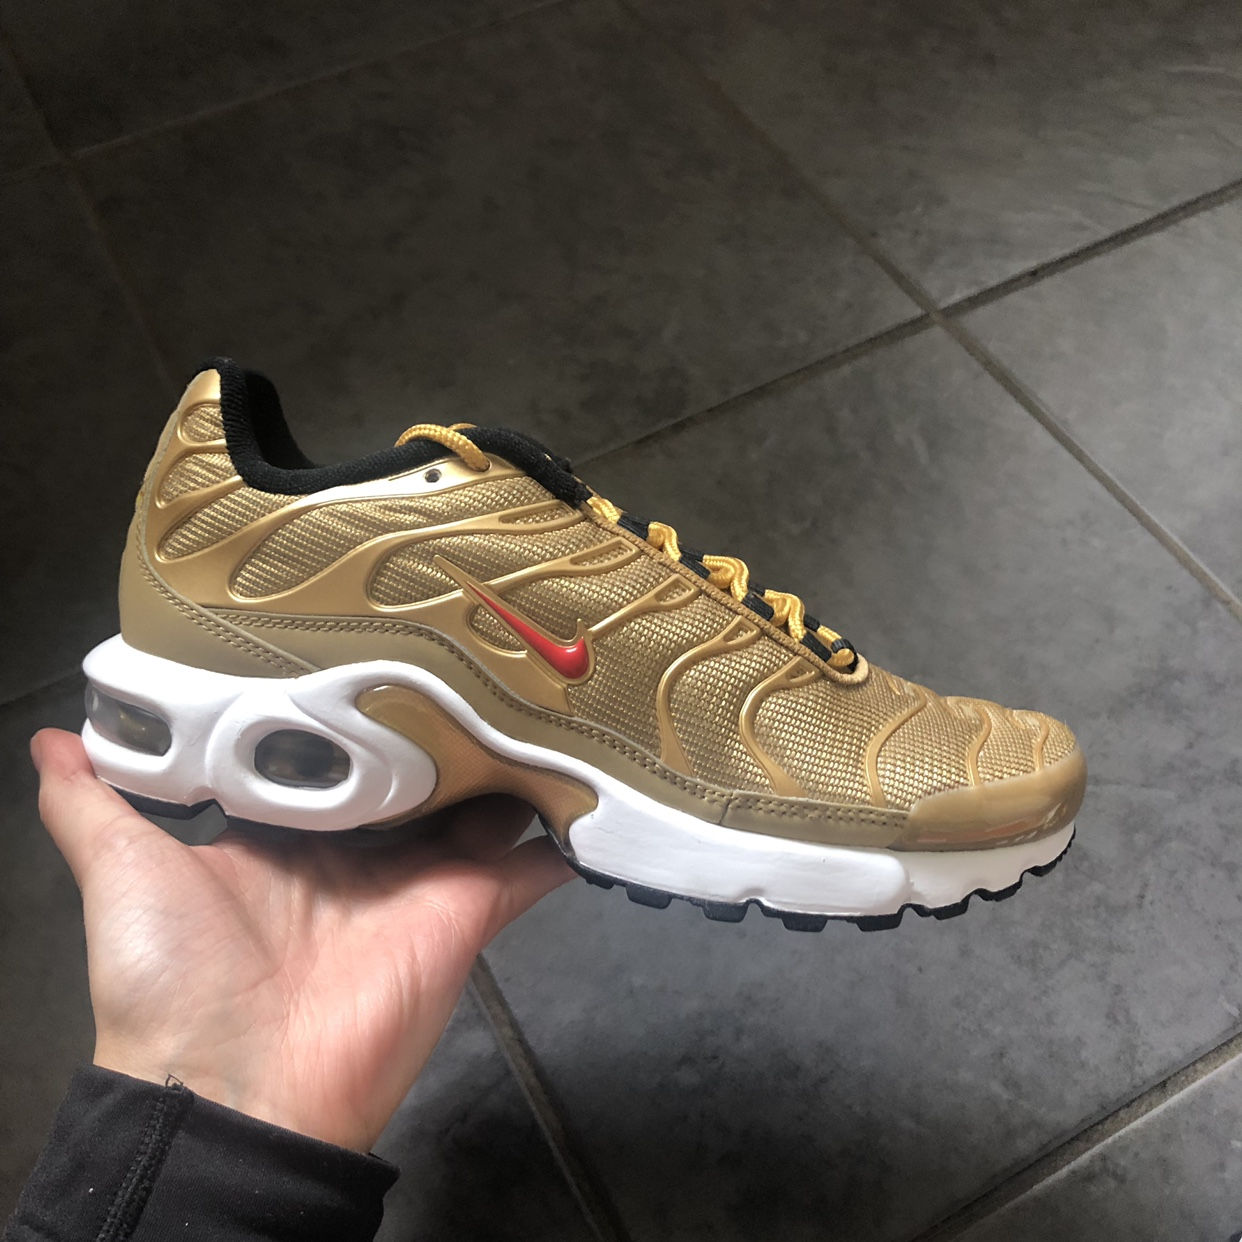 Air Max Plus TN SE BG Nike ar0259 700 metallic gold